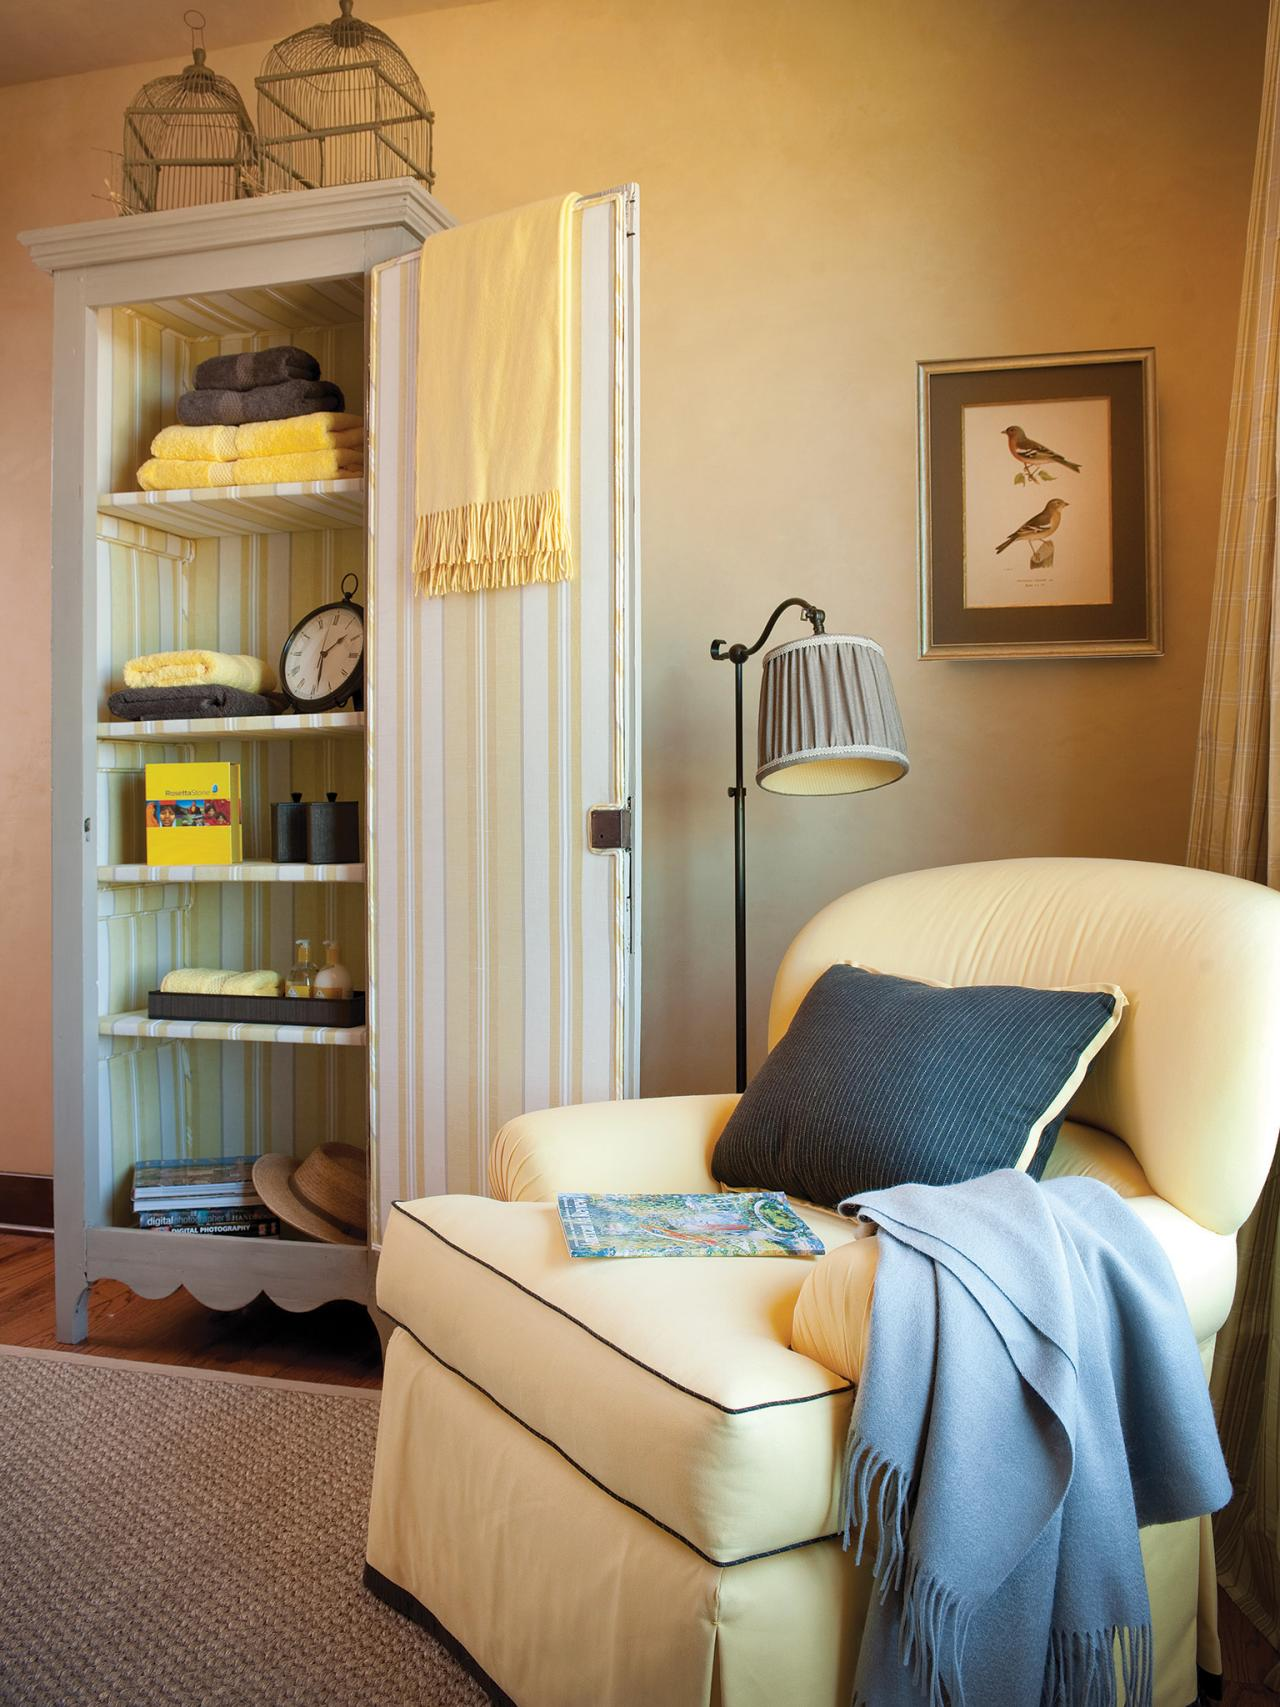 Photo page hgtv - Show pics of decorative sitting rooms ...